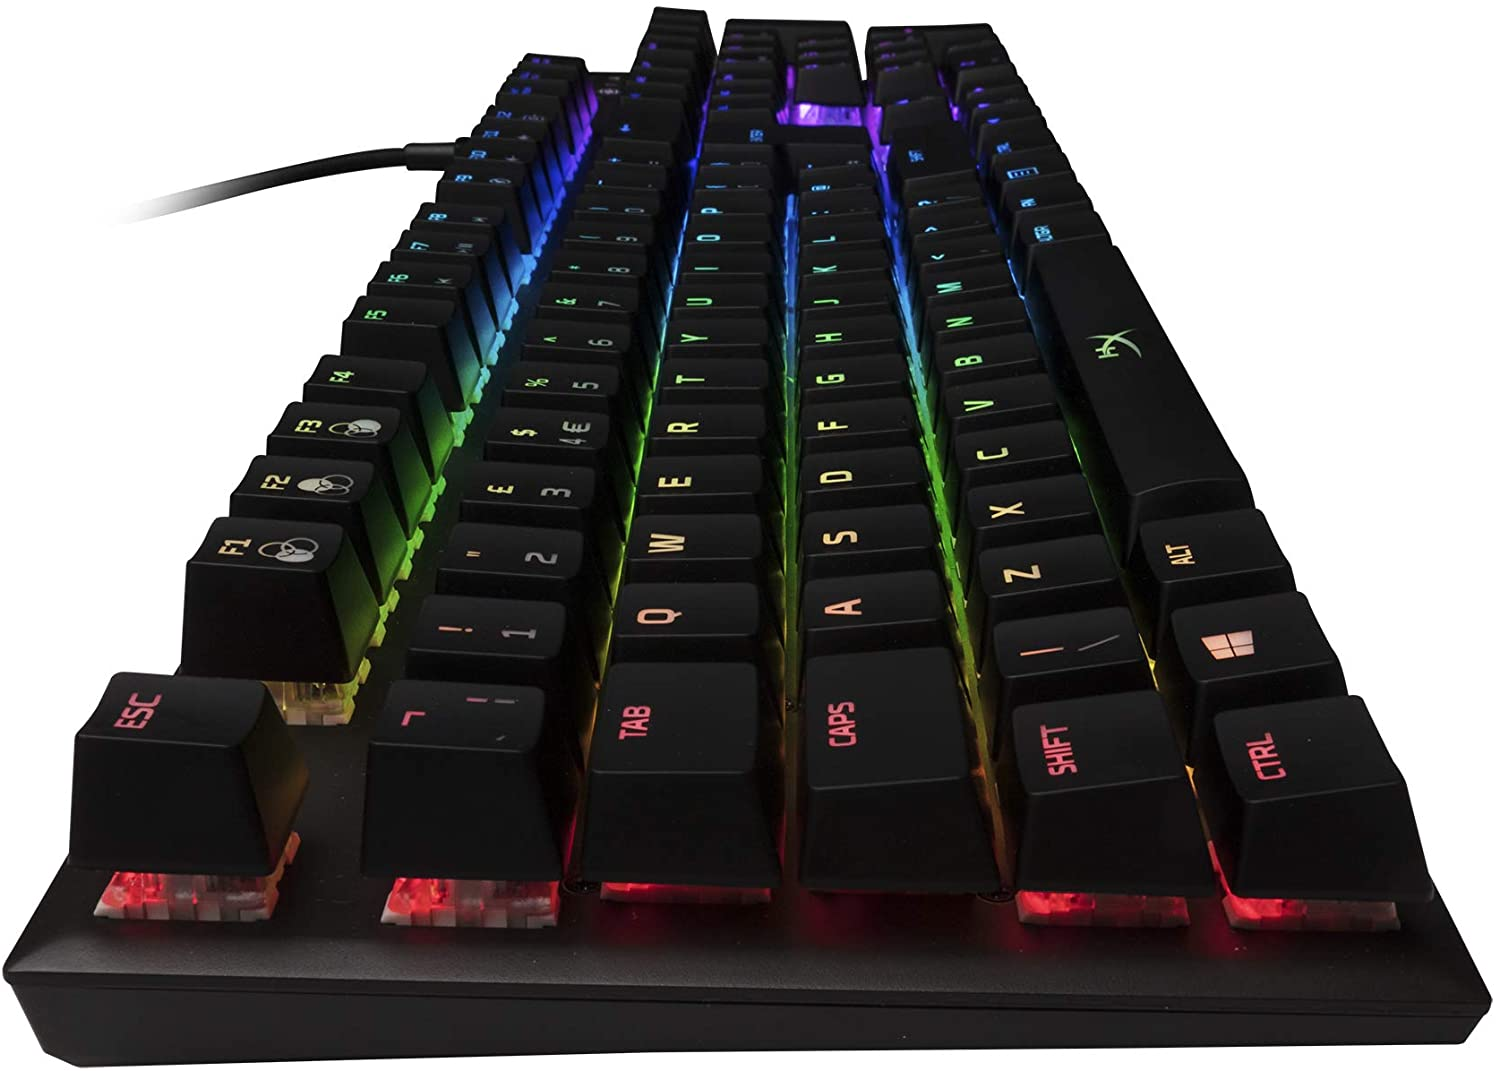 HyperX Alloy FPS RGB USB RGB LED Gaming Keyboard with Mechanical Kailh Silver Speed Switches